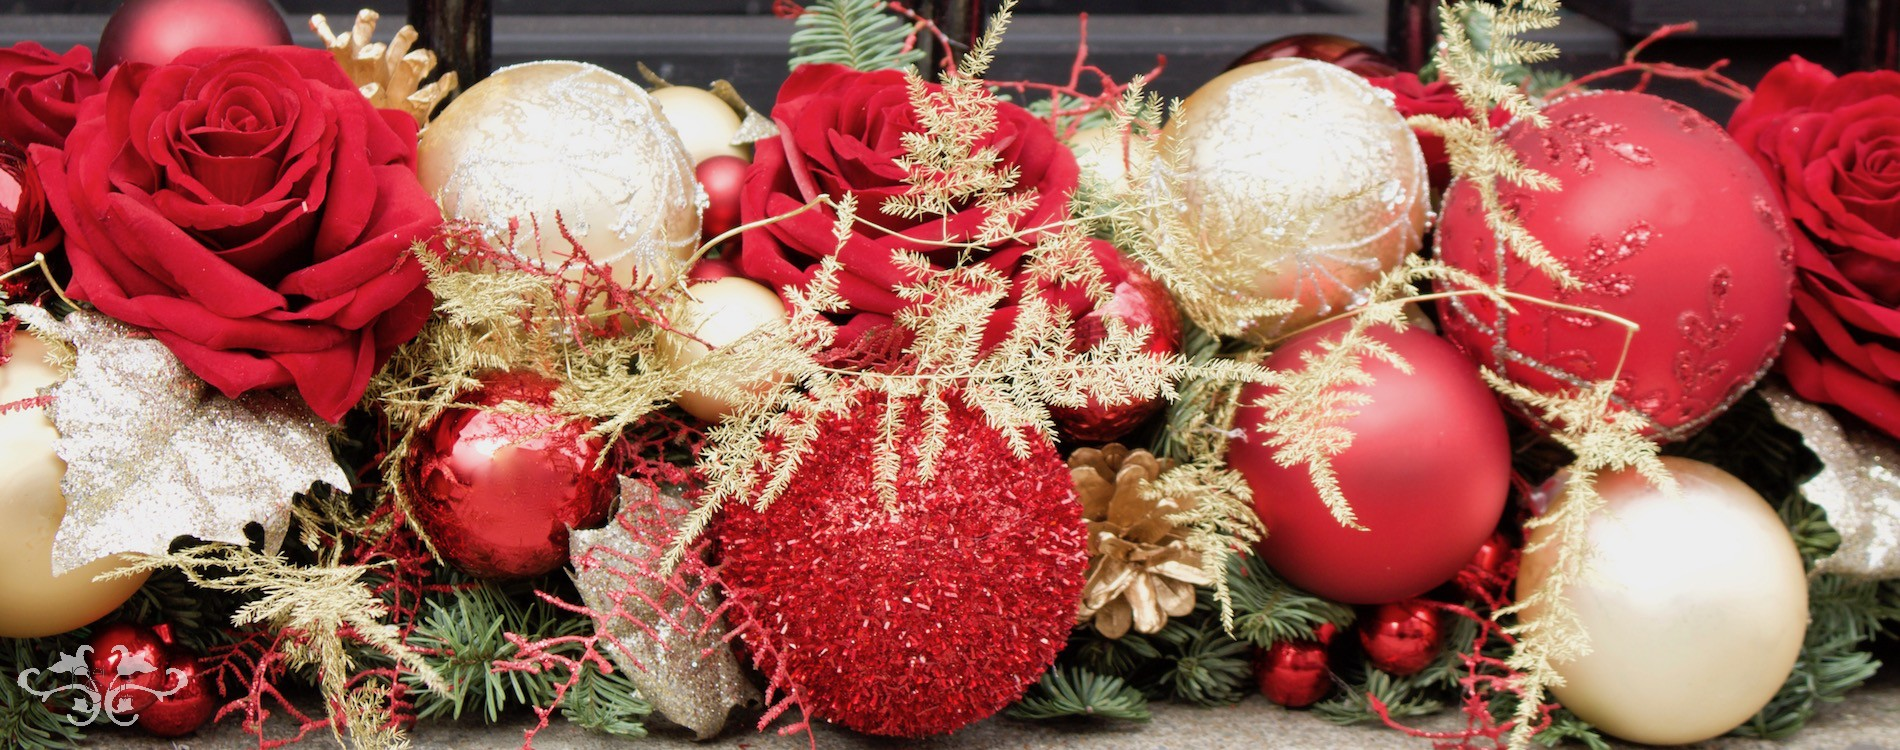 Luxury Christmas decor by Neill Strain Floral Couture London